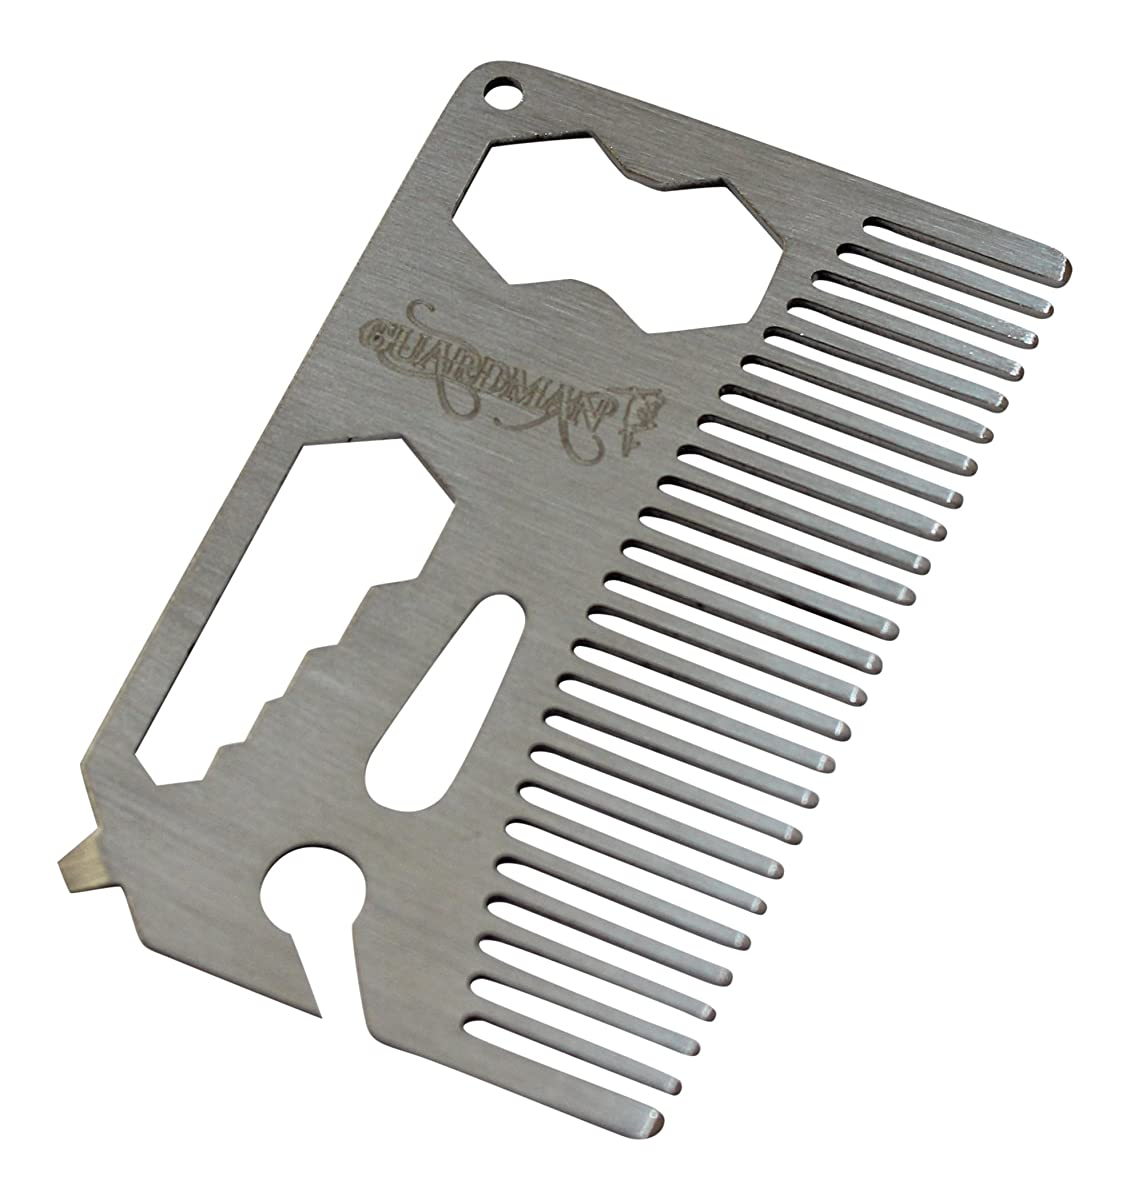 Guardman Stainless Steel Multitool With Beer Bottle Opener